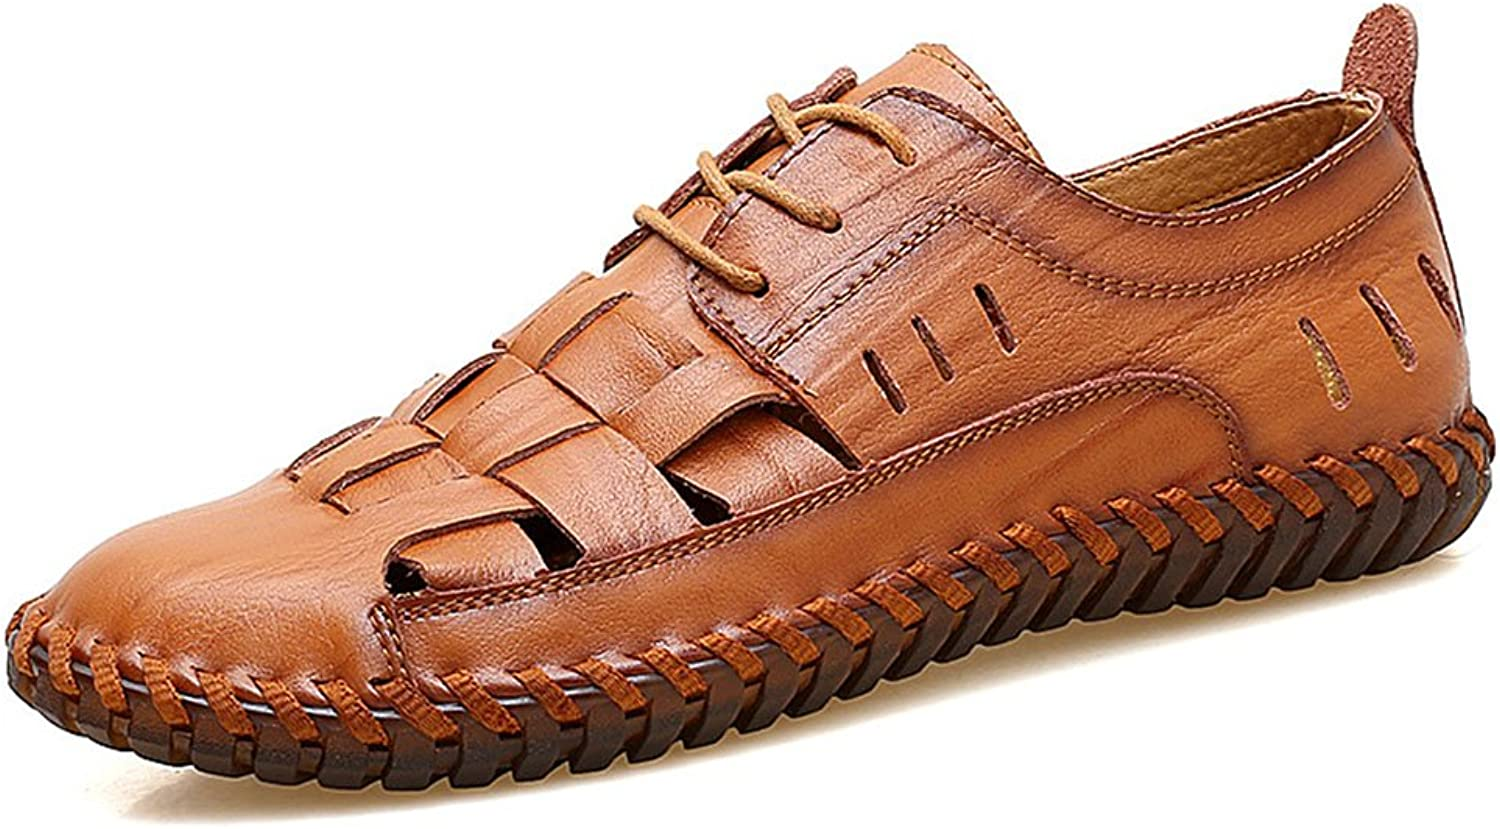 Men's Casual Sandals Non-Slip Comfort Men's Leather Driving shoes Hollow Breathable Large Size Beach shoes Rubber shoes (color   Red Brown, Size   7 US)